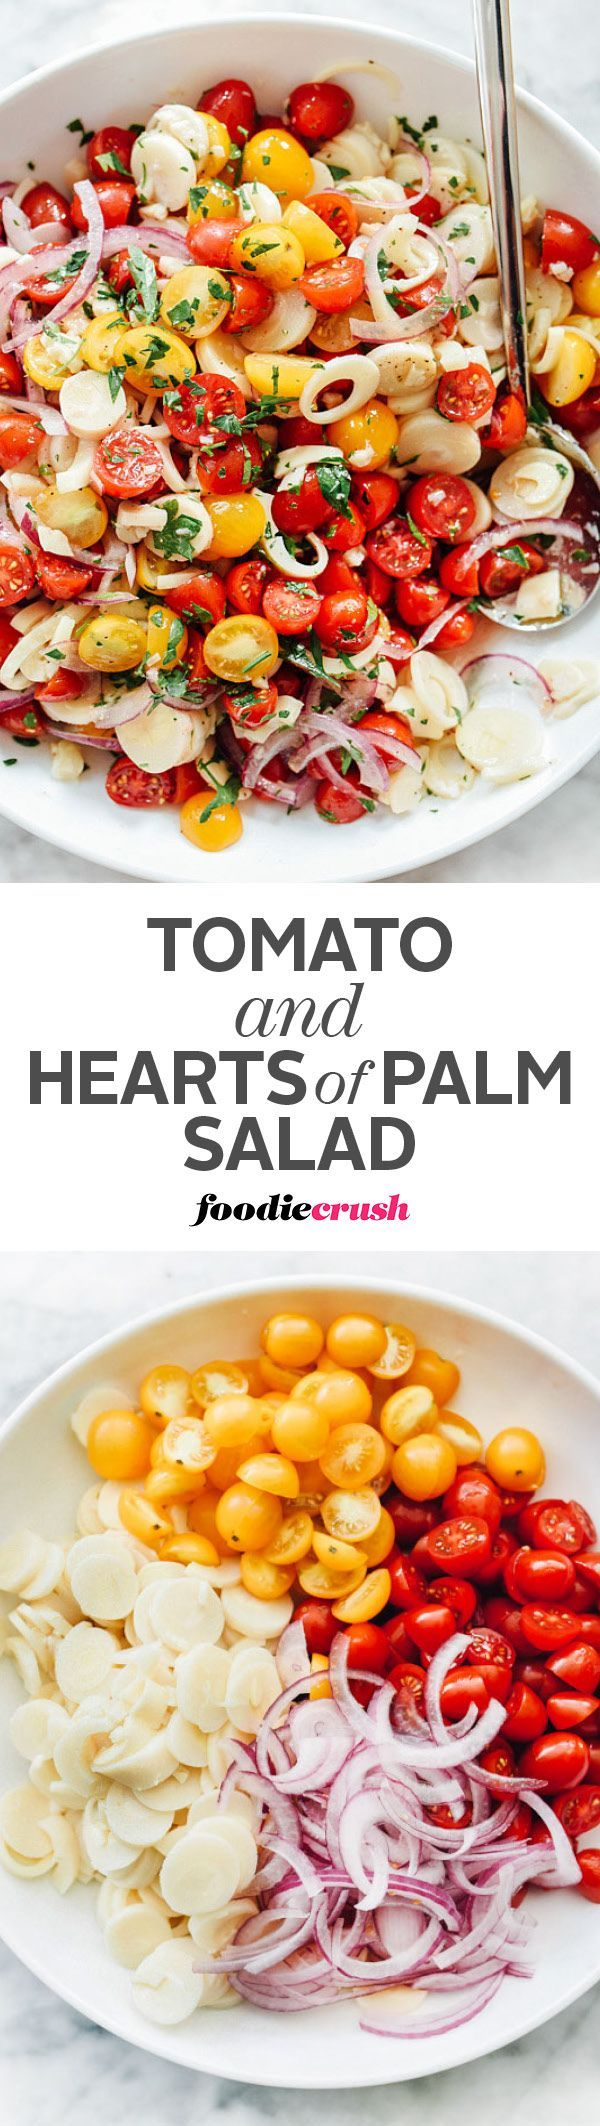 This tomato and hearts of palm salad takes just 10 minutes with a sharp knife…